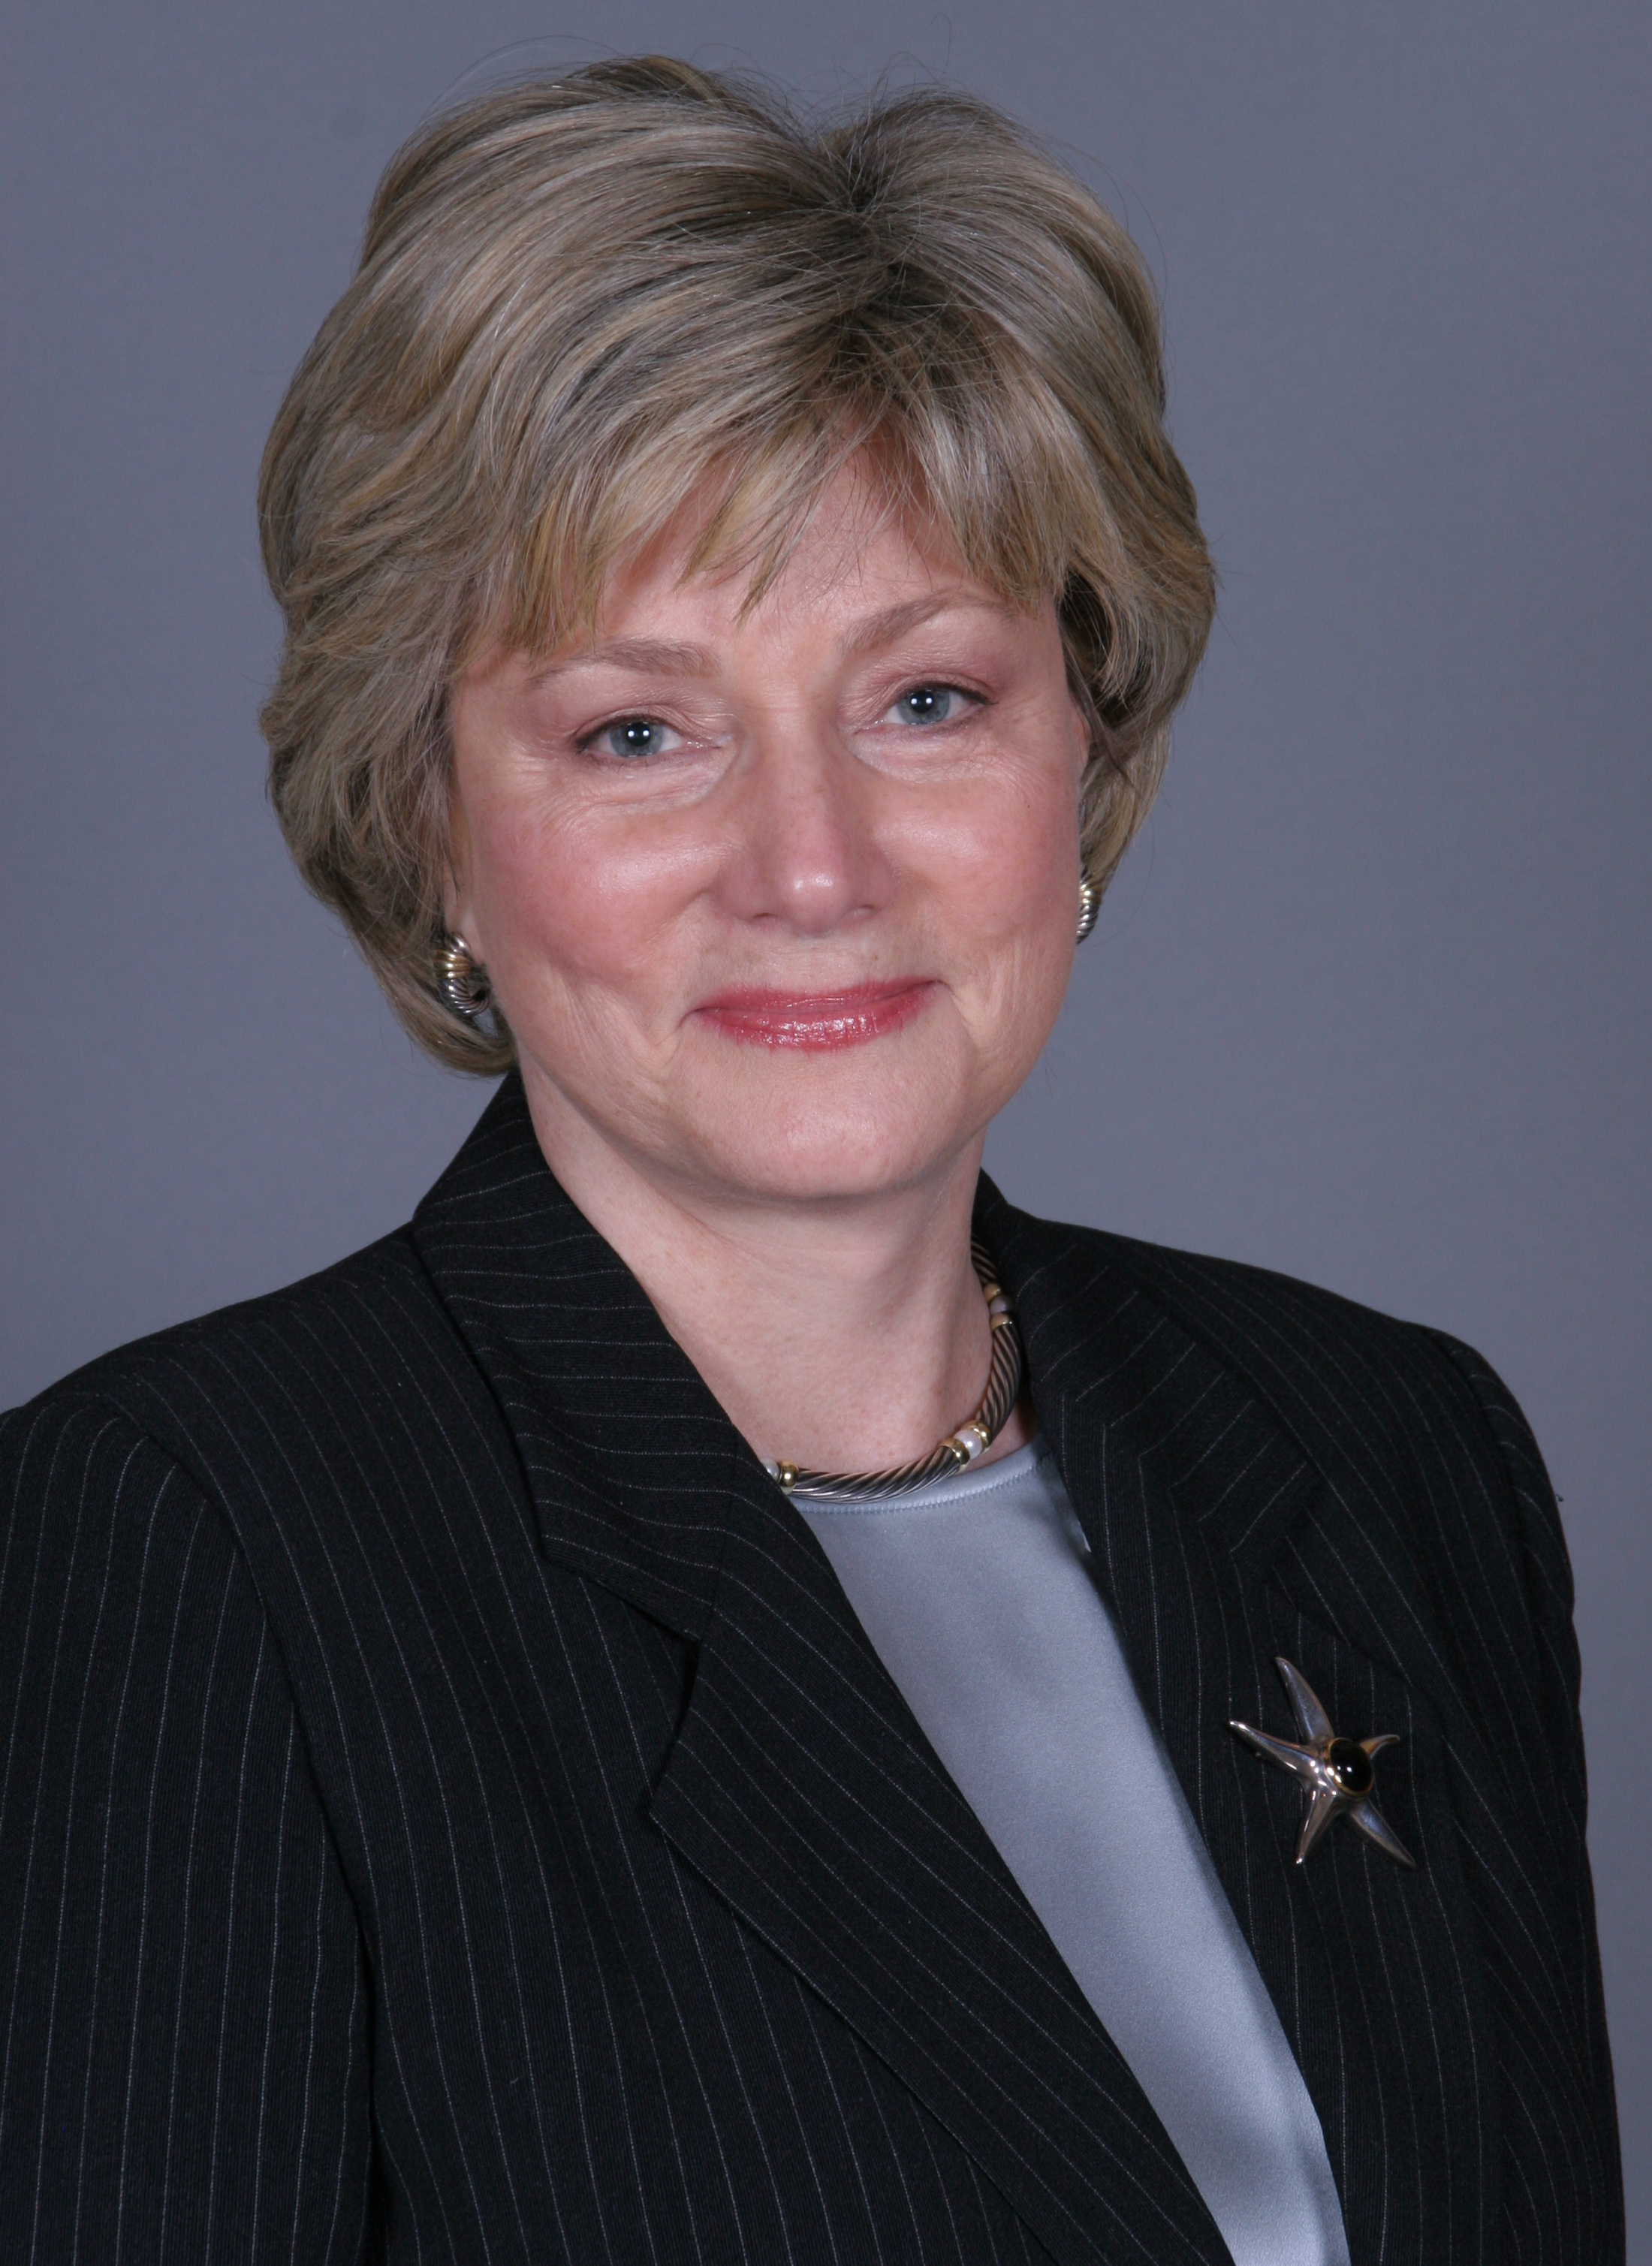 Barbara S. Cochran - Missouri School of Journalism